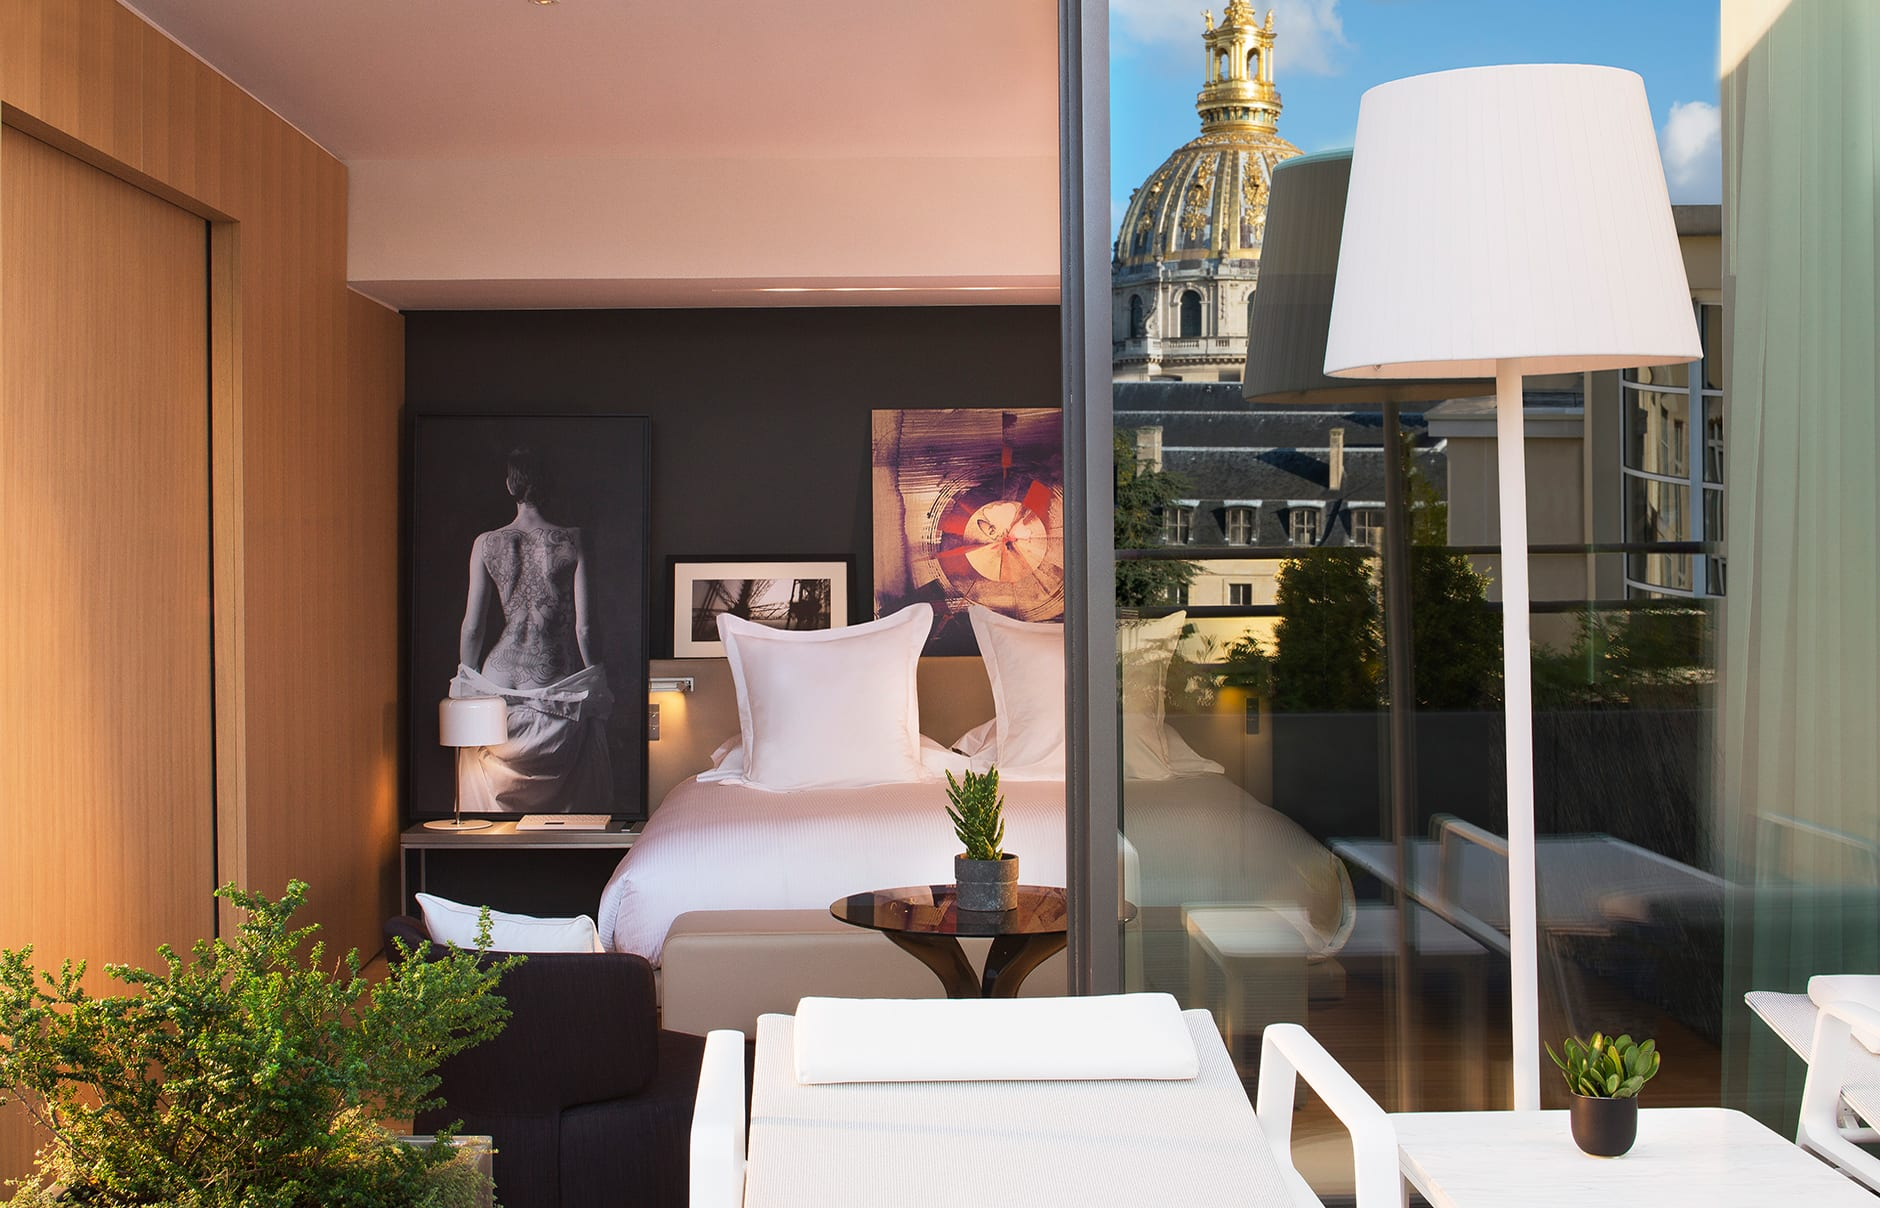 Le Cinq Codet, Paris, France. Hotel Review by TravelPlusStyle. Photo © Le Cinq Codet